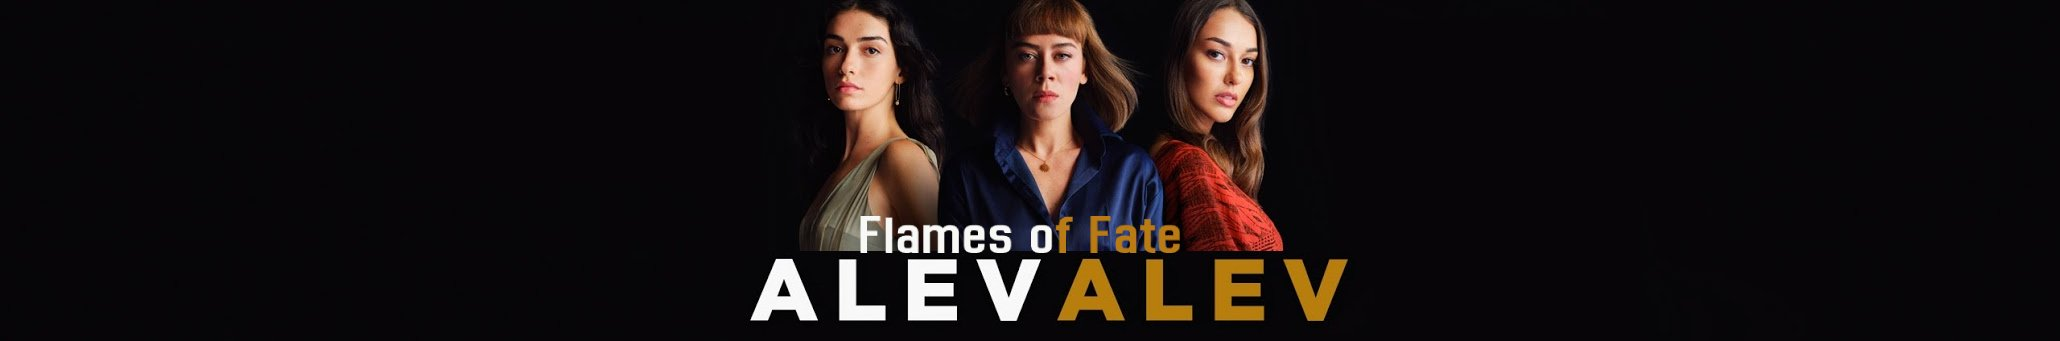 Alev Alev Season 1 English subtitles | Flames of Fate